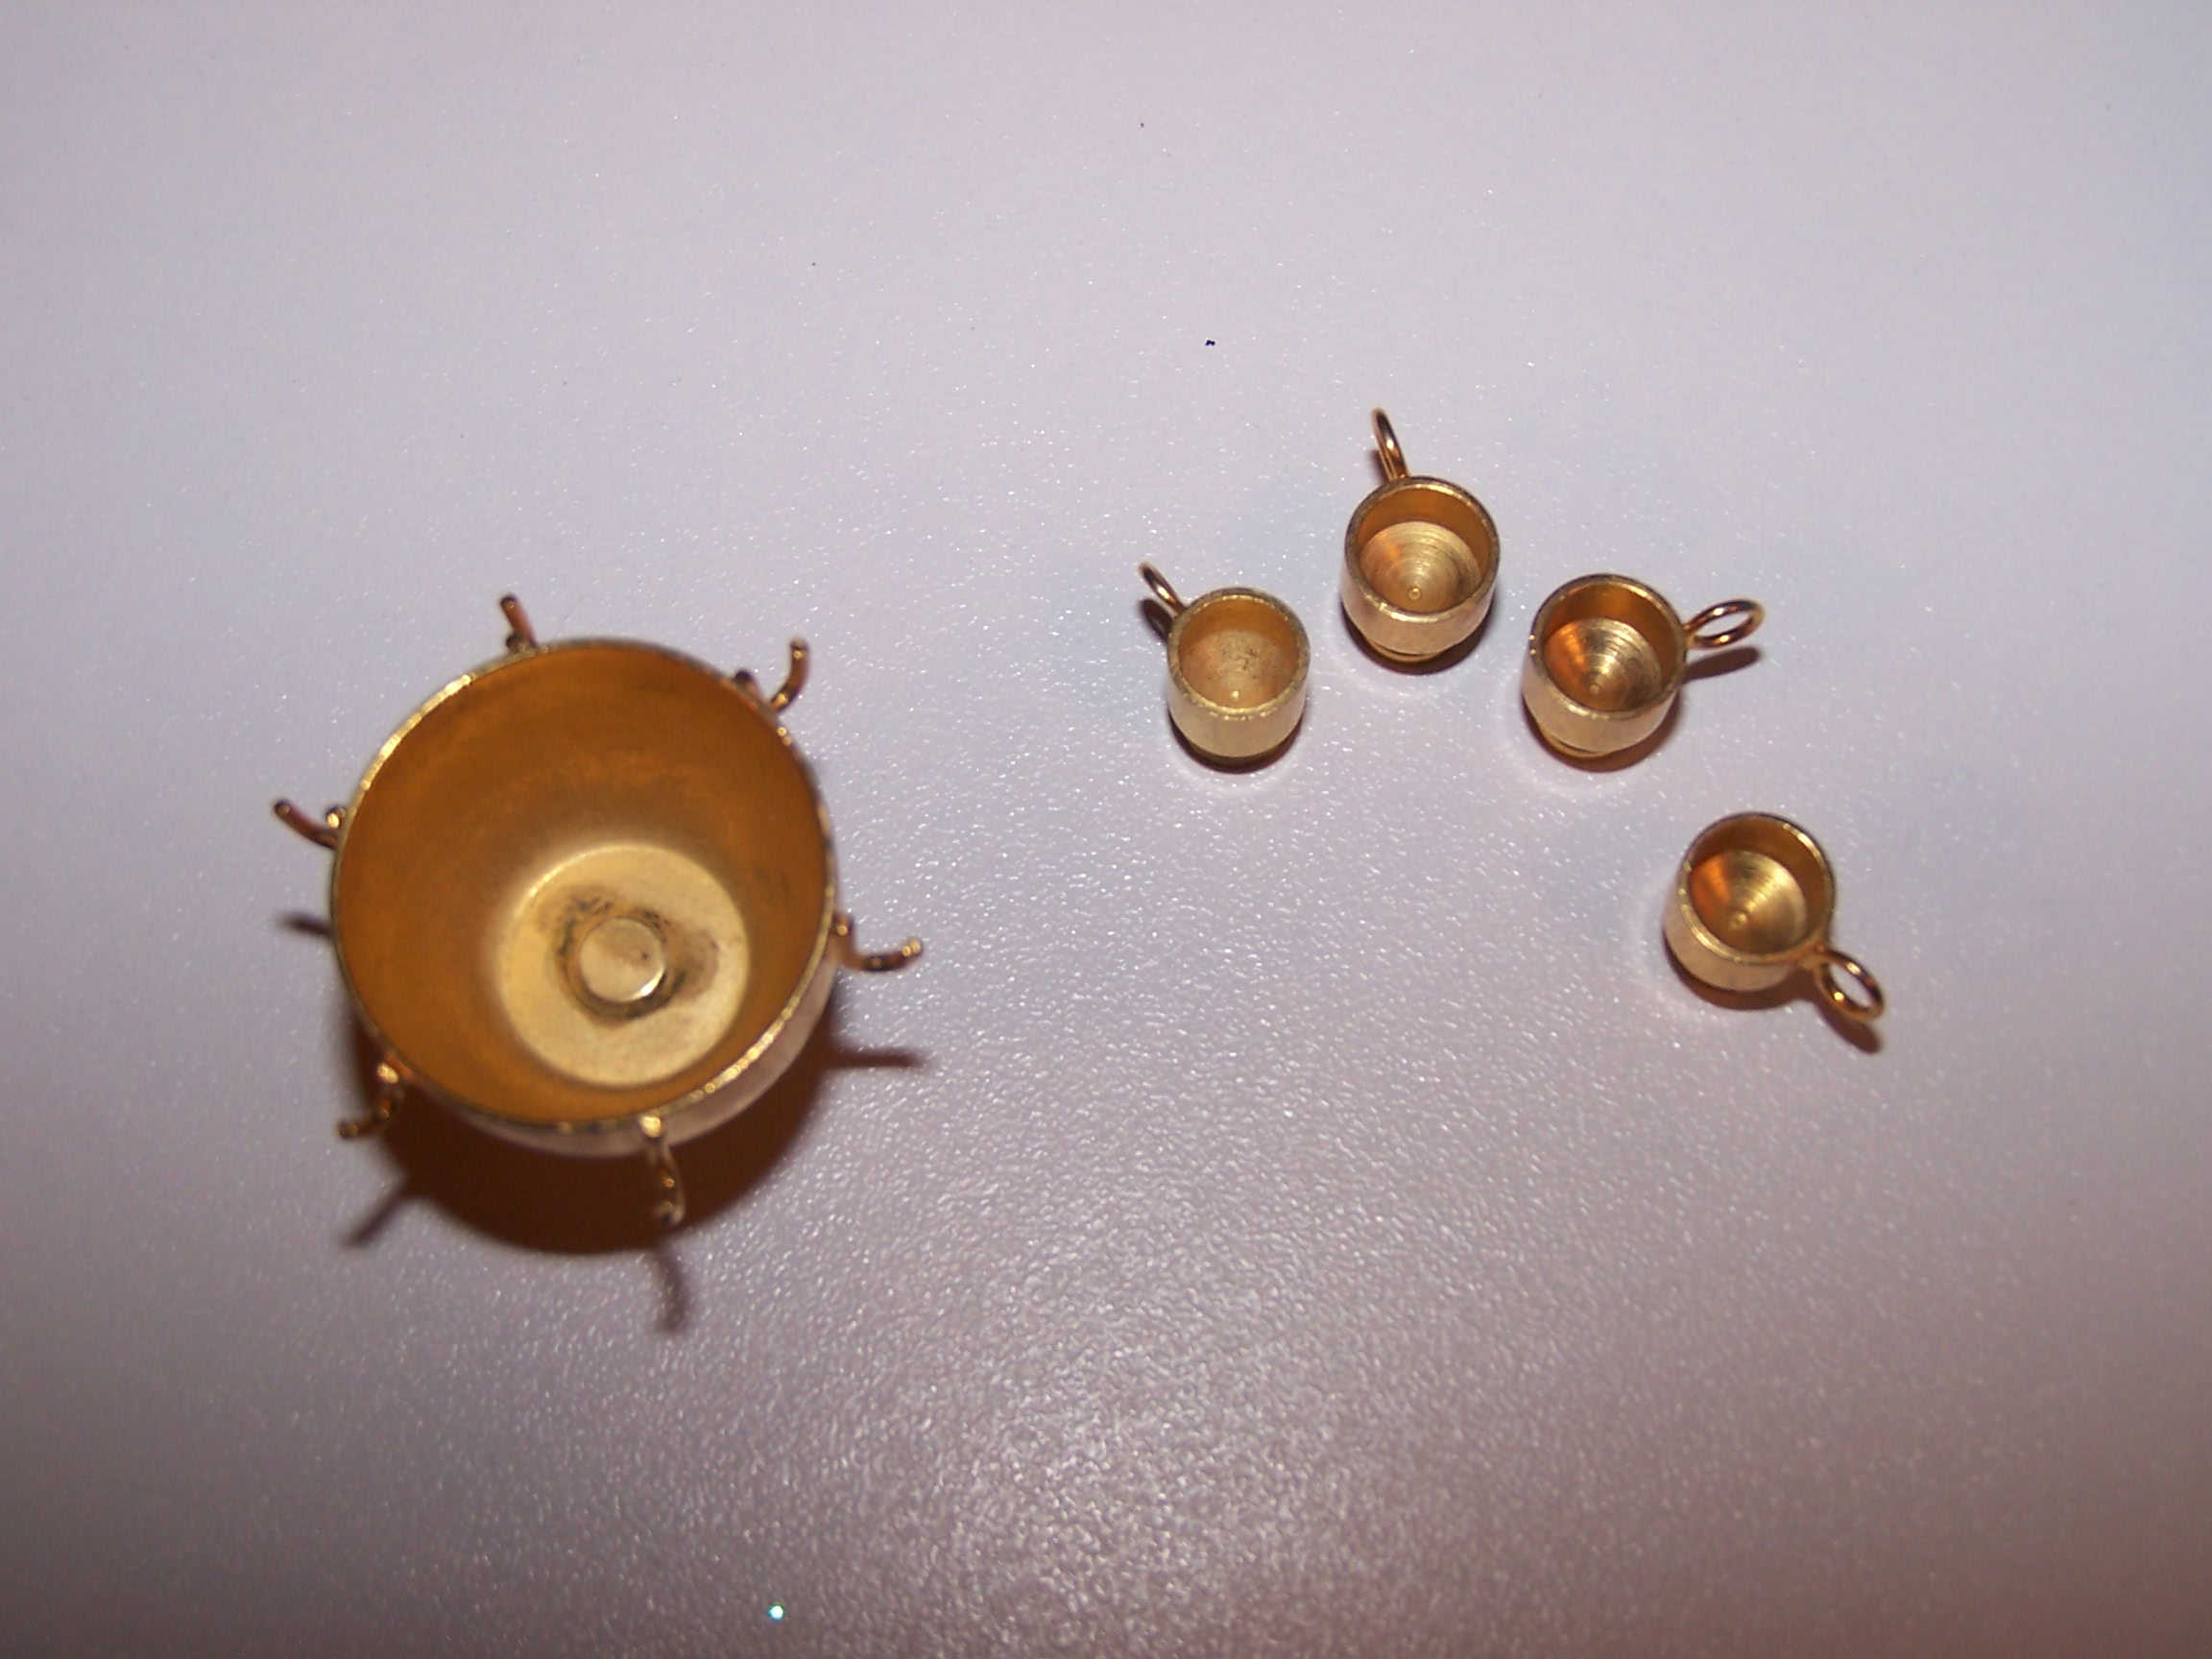 Image 1 of Dollhouse Brass Punch Bowl w Cups, Miniature